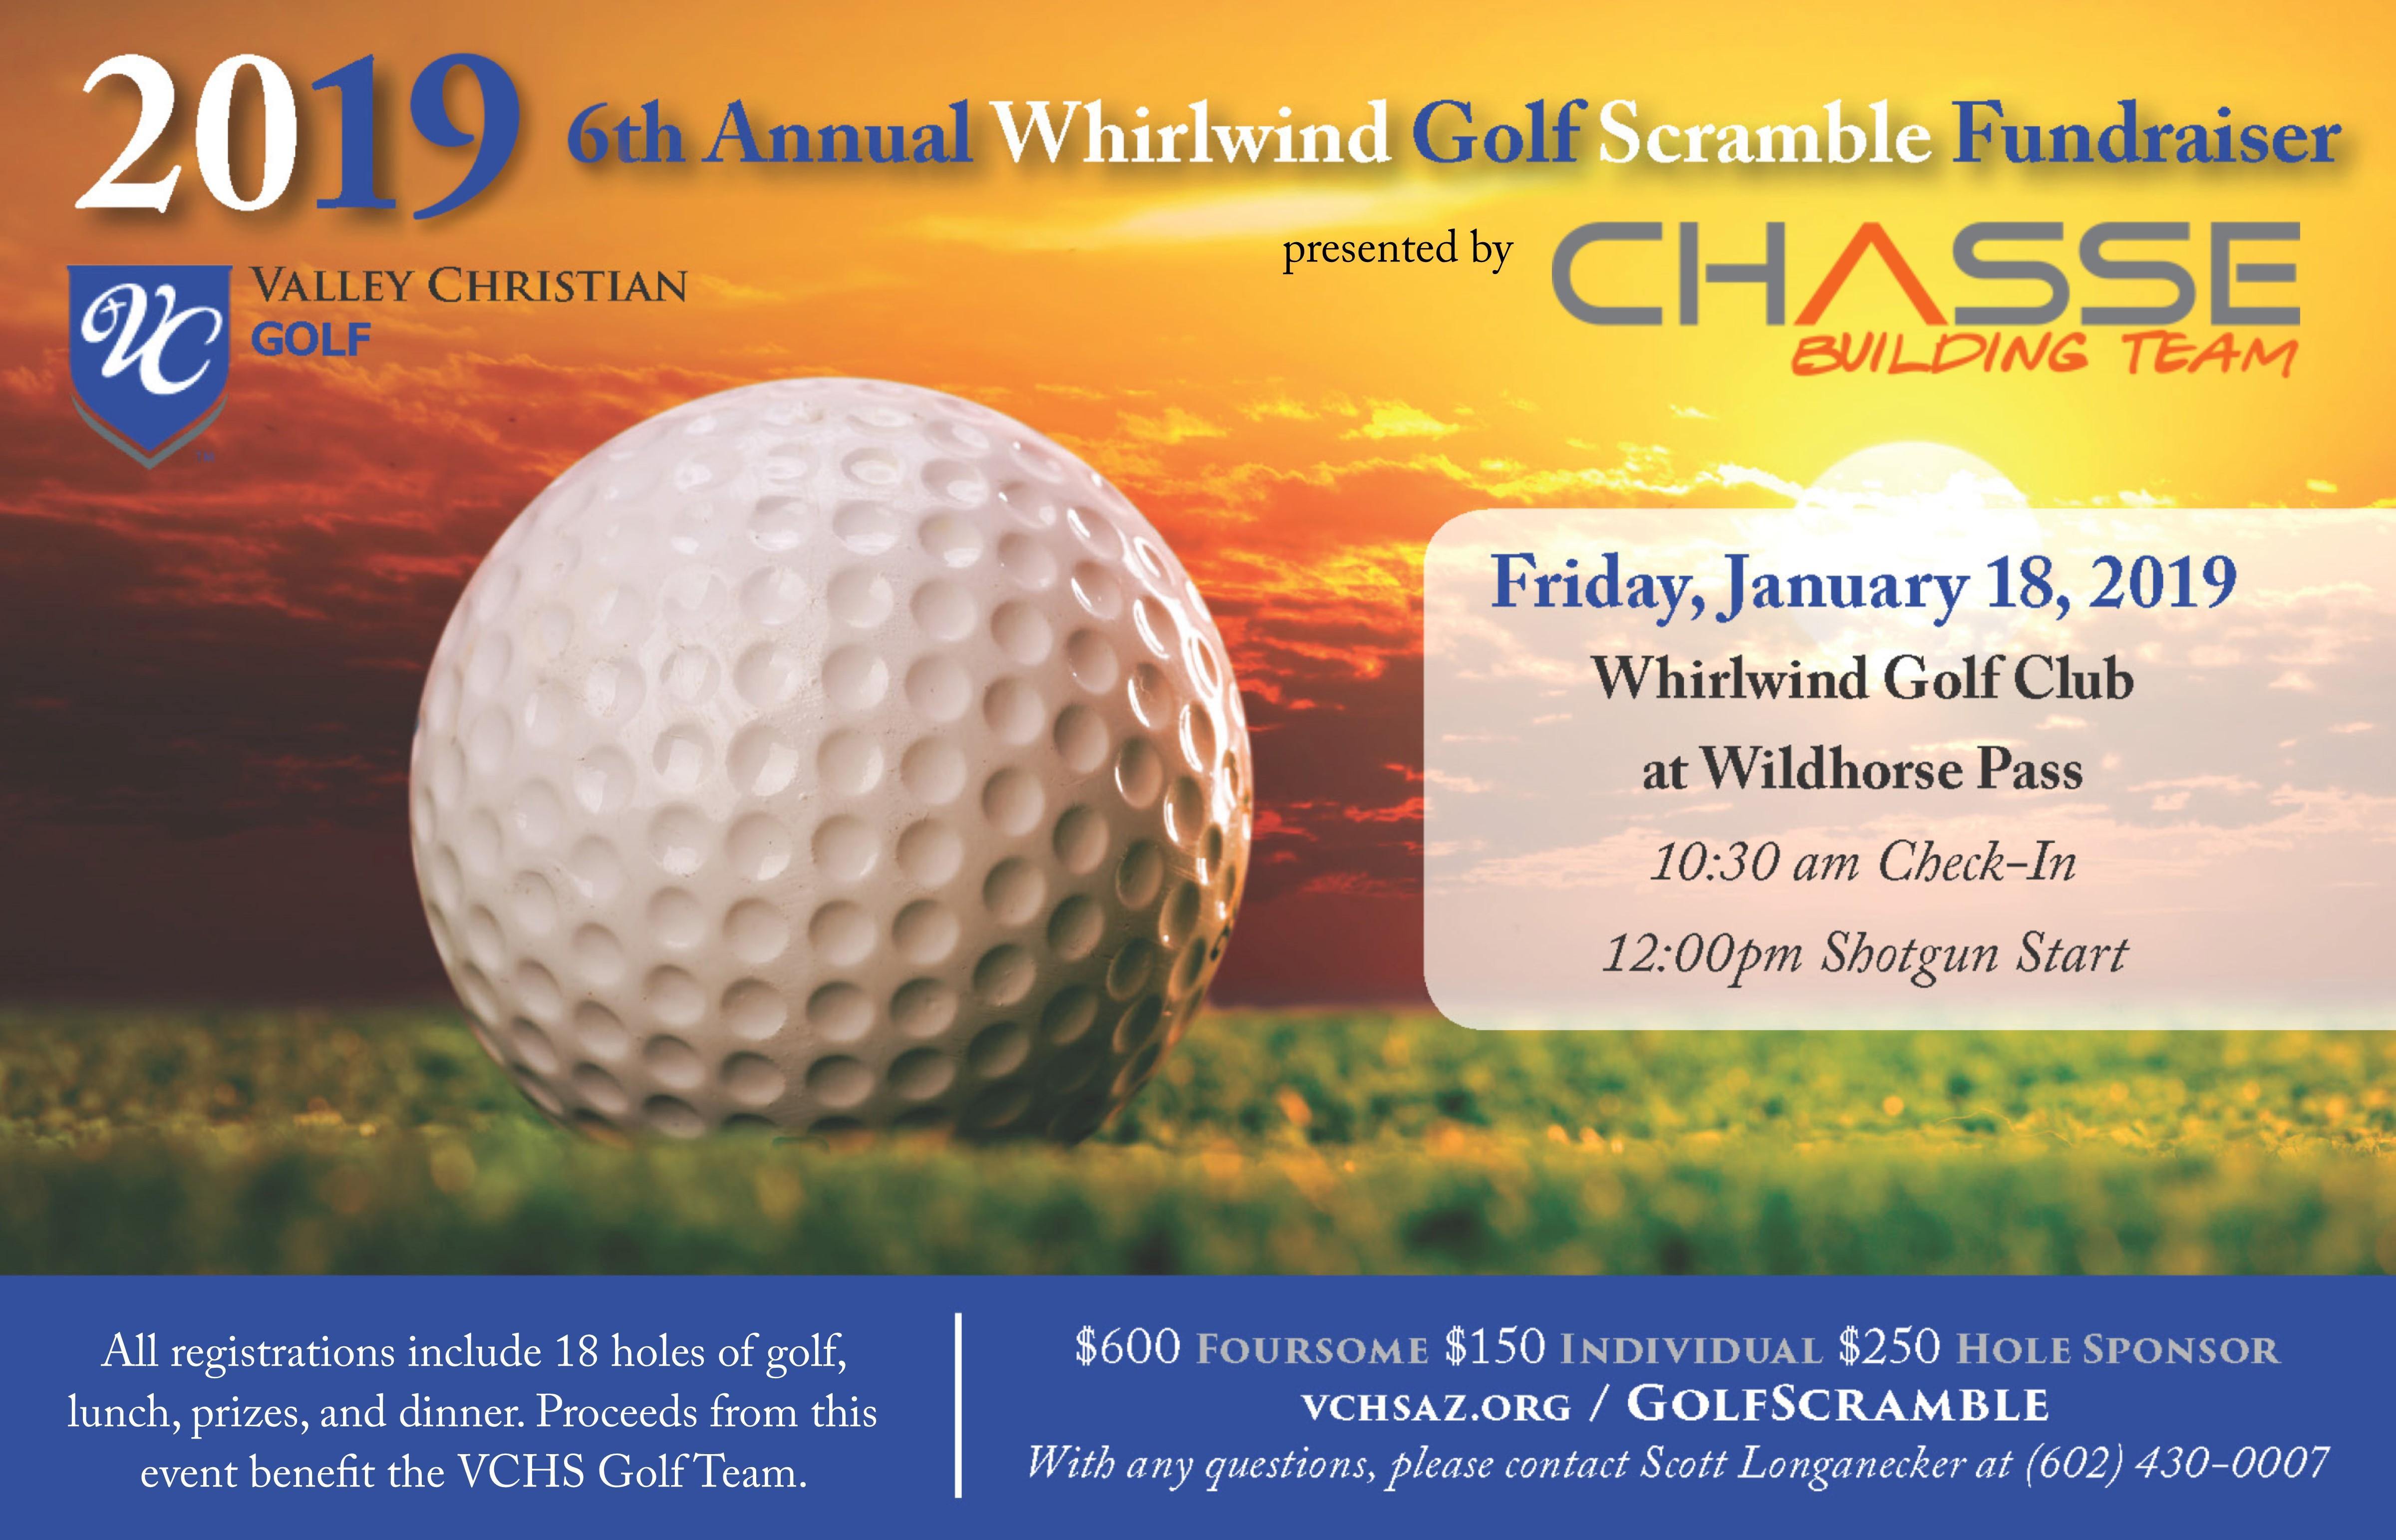 2019 Whirlwind Golf Scramble, presented by Chasse Building Team